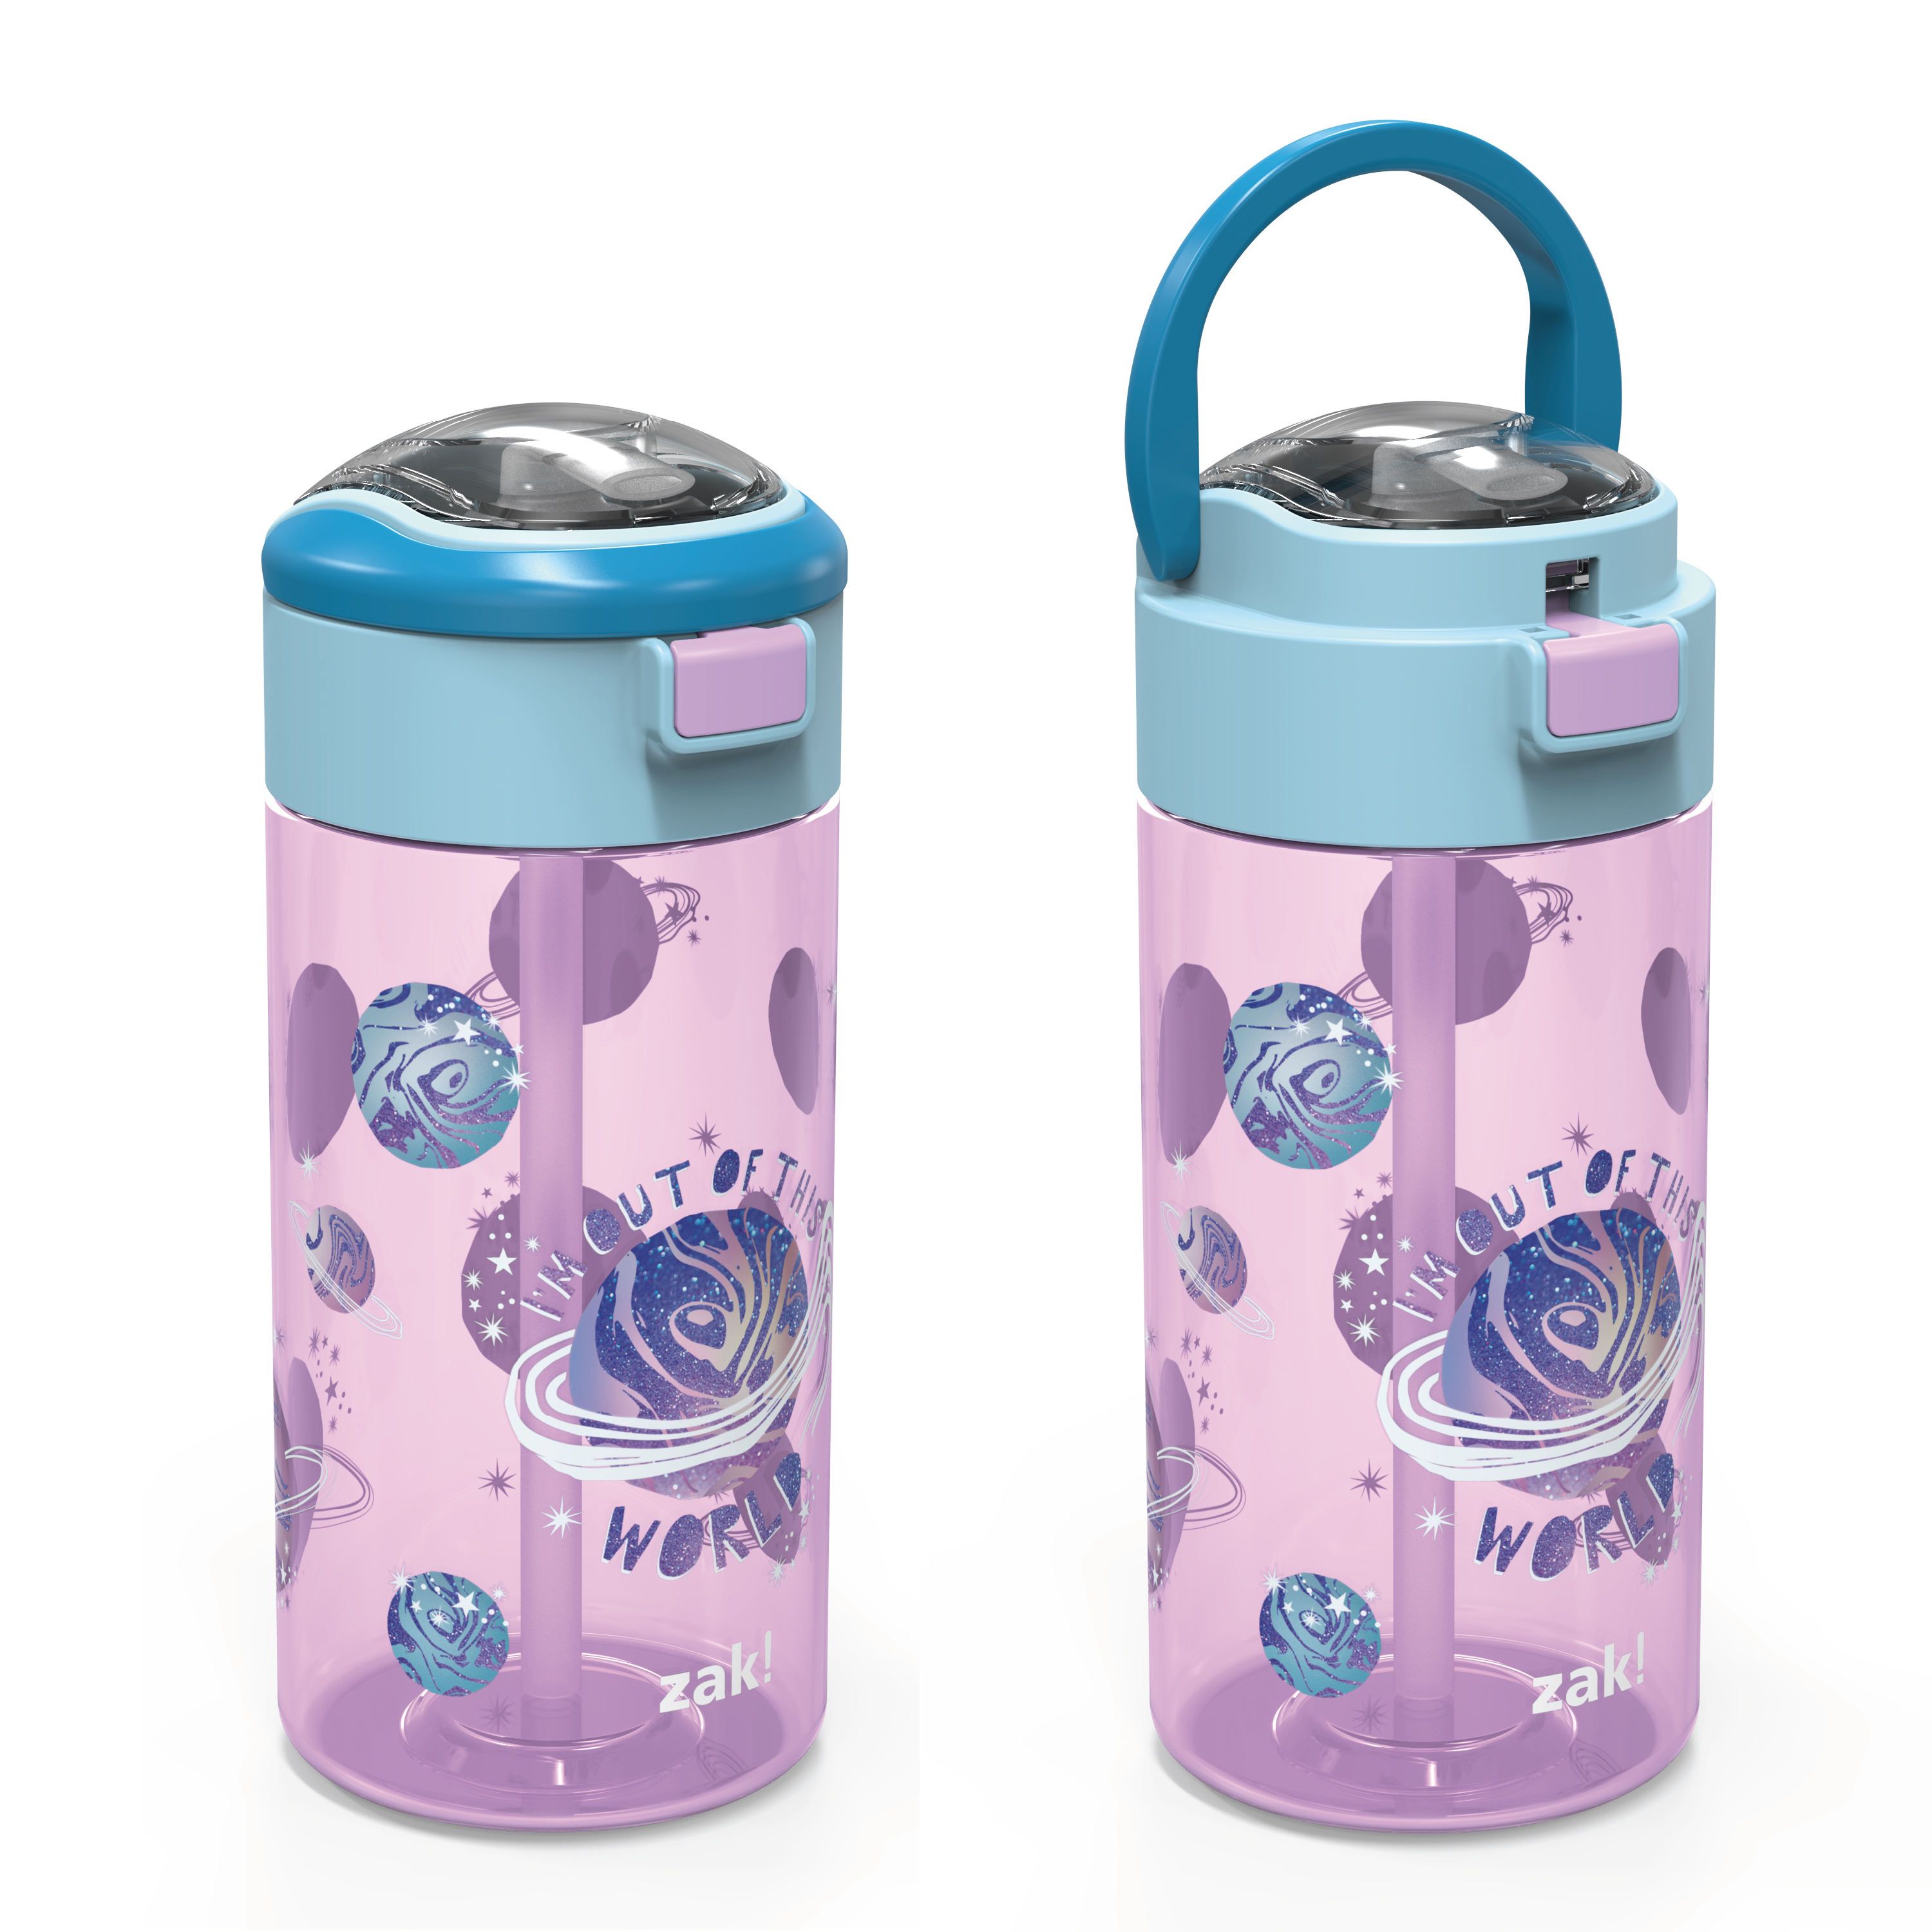 Genesis 18 ounce Water Bottles, Planet, 2-piece set slideshow image 6